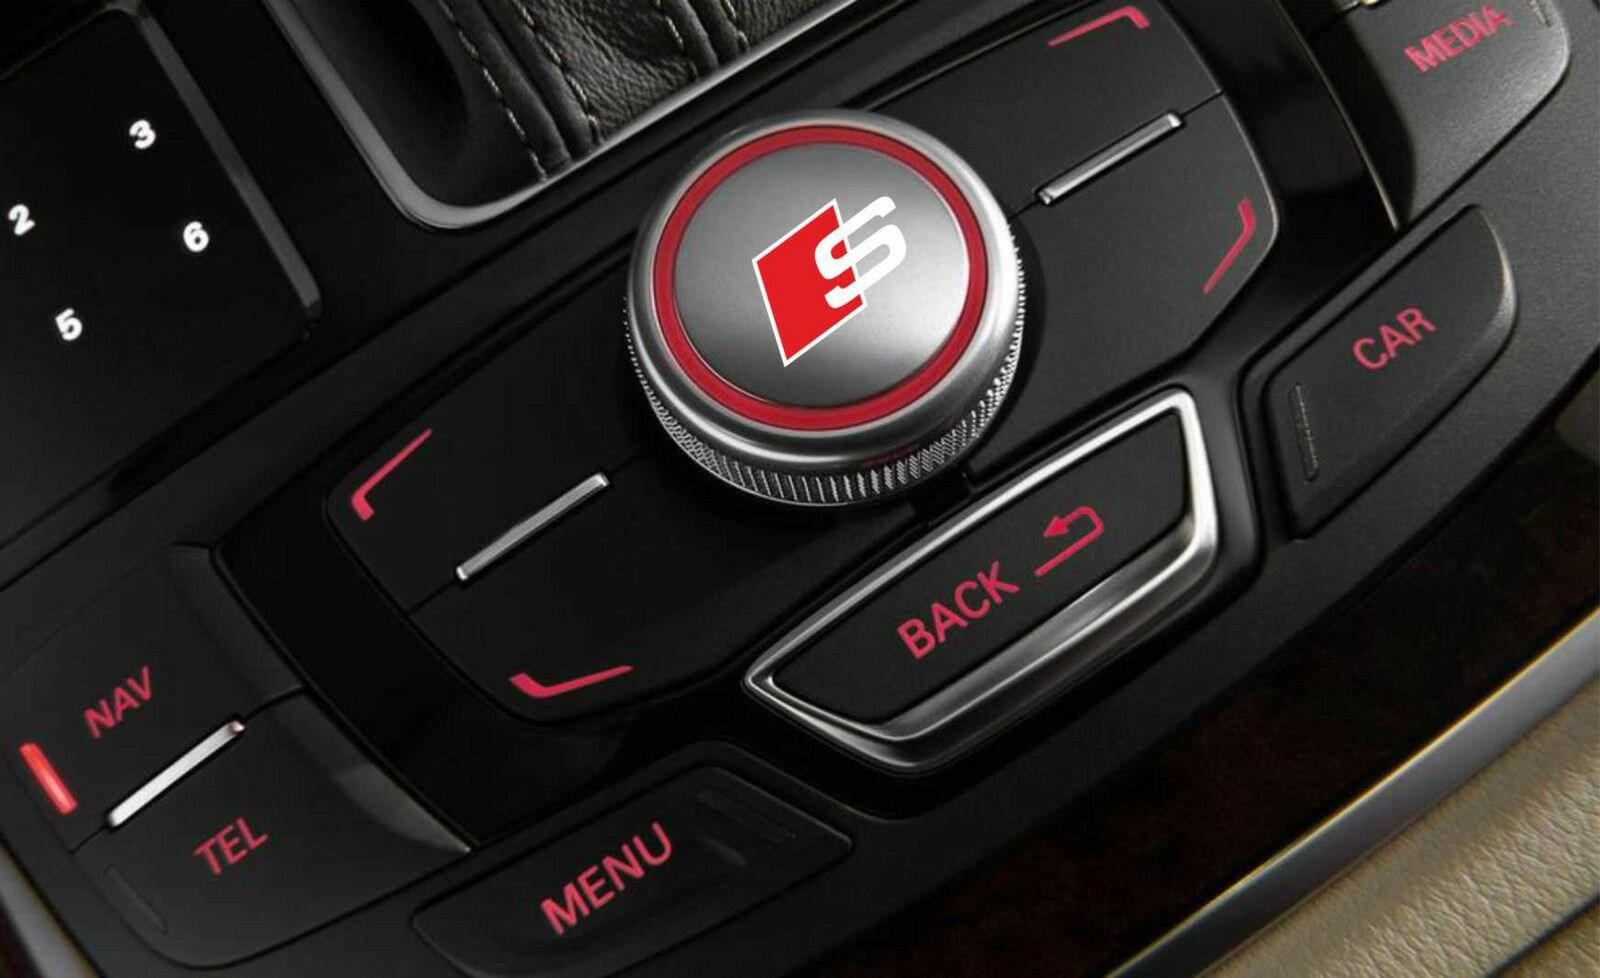 audi s line mmi idrive button decal sticker logo a3 a4 a5. Black Bedroom Furniture Sets. Home Design Ideas